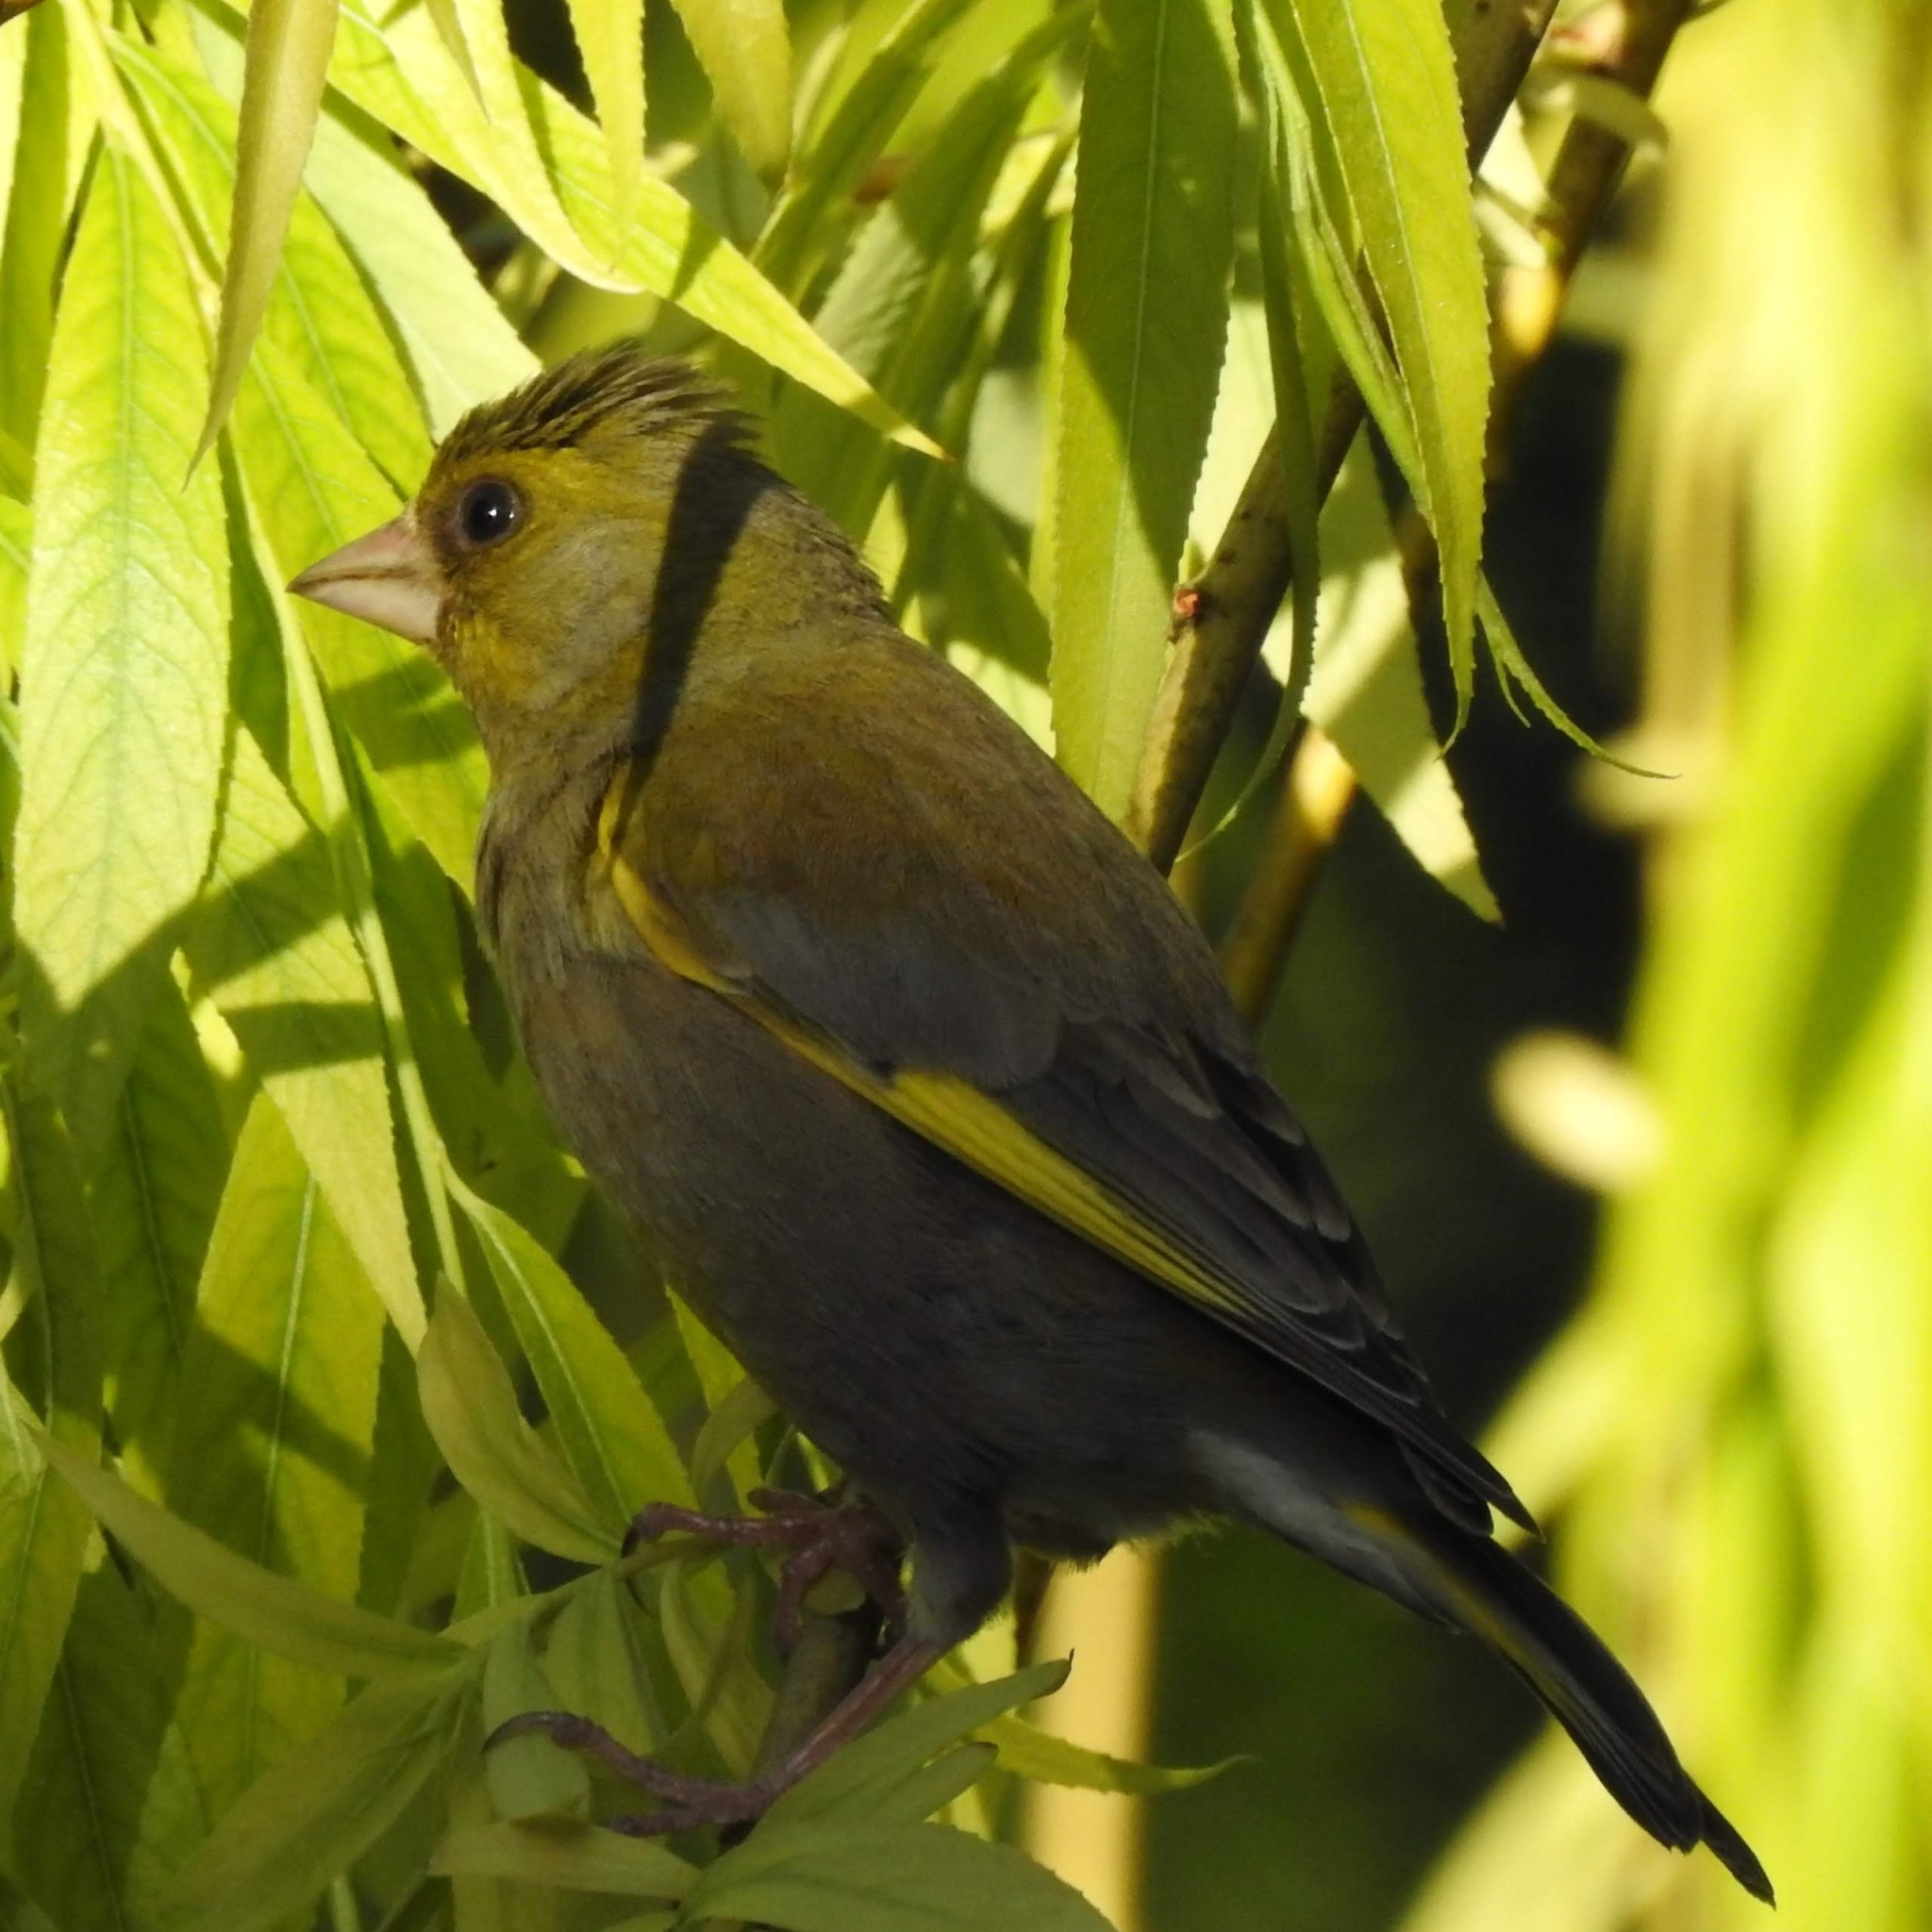 Greenfinch male